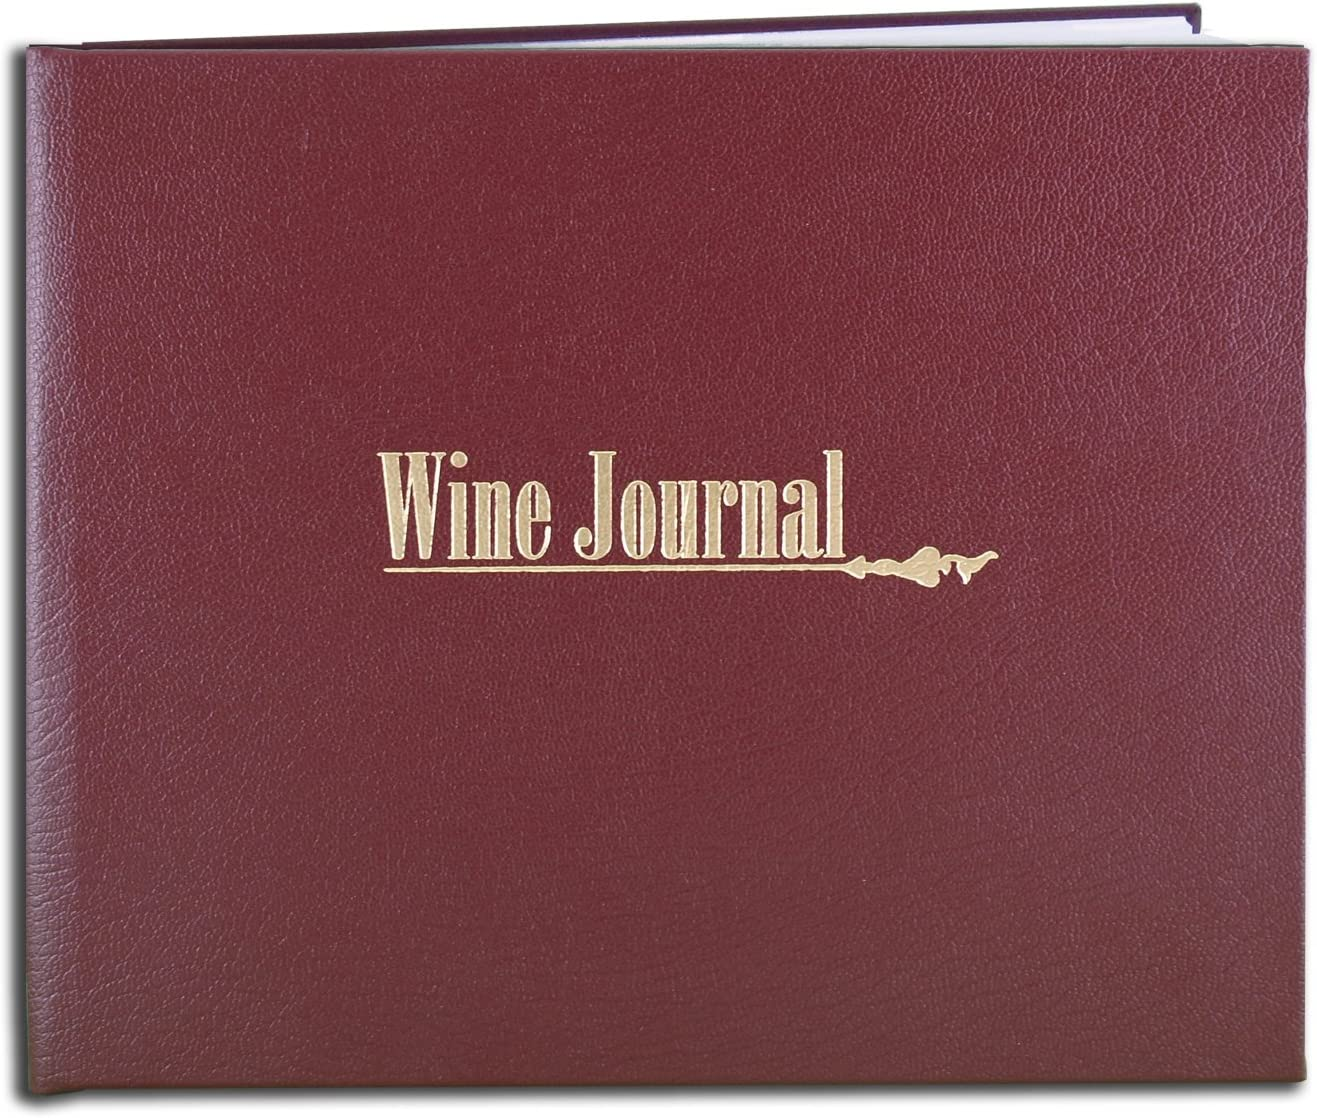 Black Leather Cover 72 Pages Professional Grade Smyth Sewn Hardbound 8 7//8 x 7 BookFactory Wine Journal//Wine Log Book//Wine Collector/'s Diary//Wine Notebook LOG-072-XLO-TWR-WINE-XKT43R